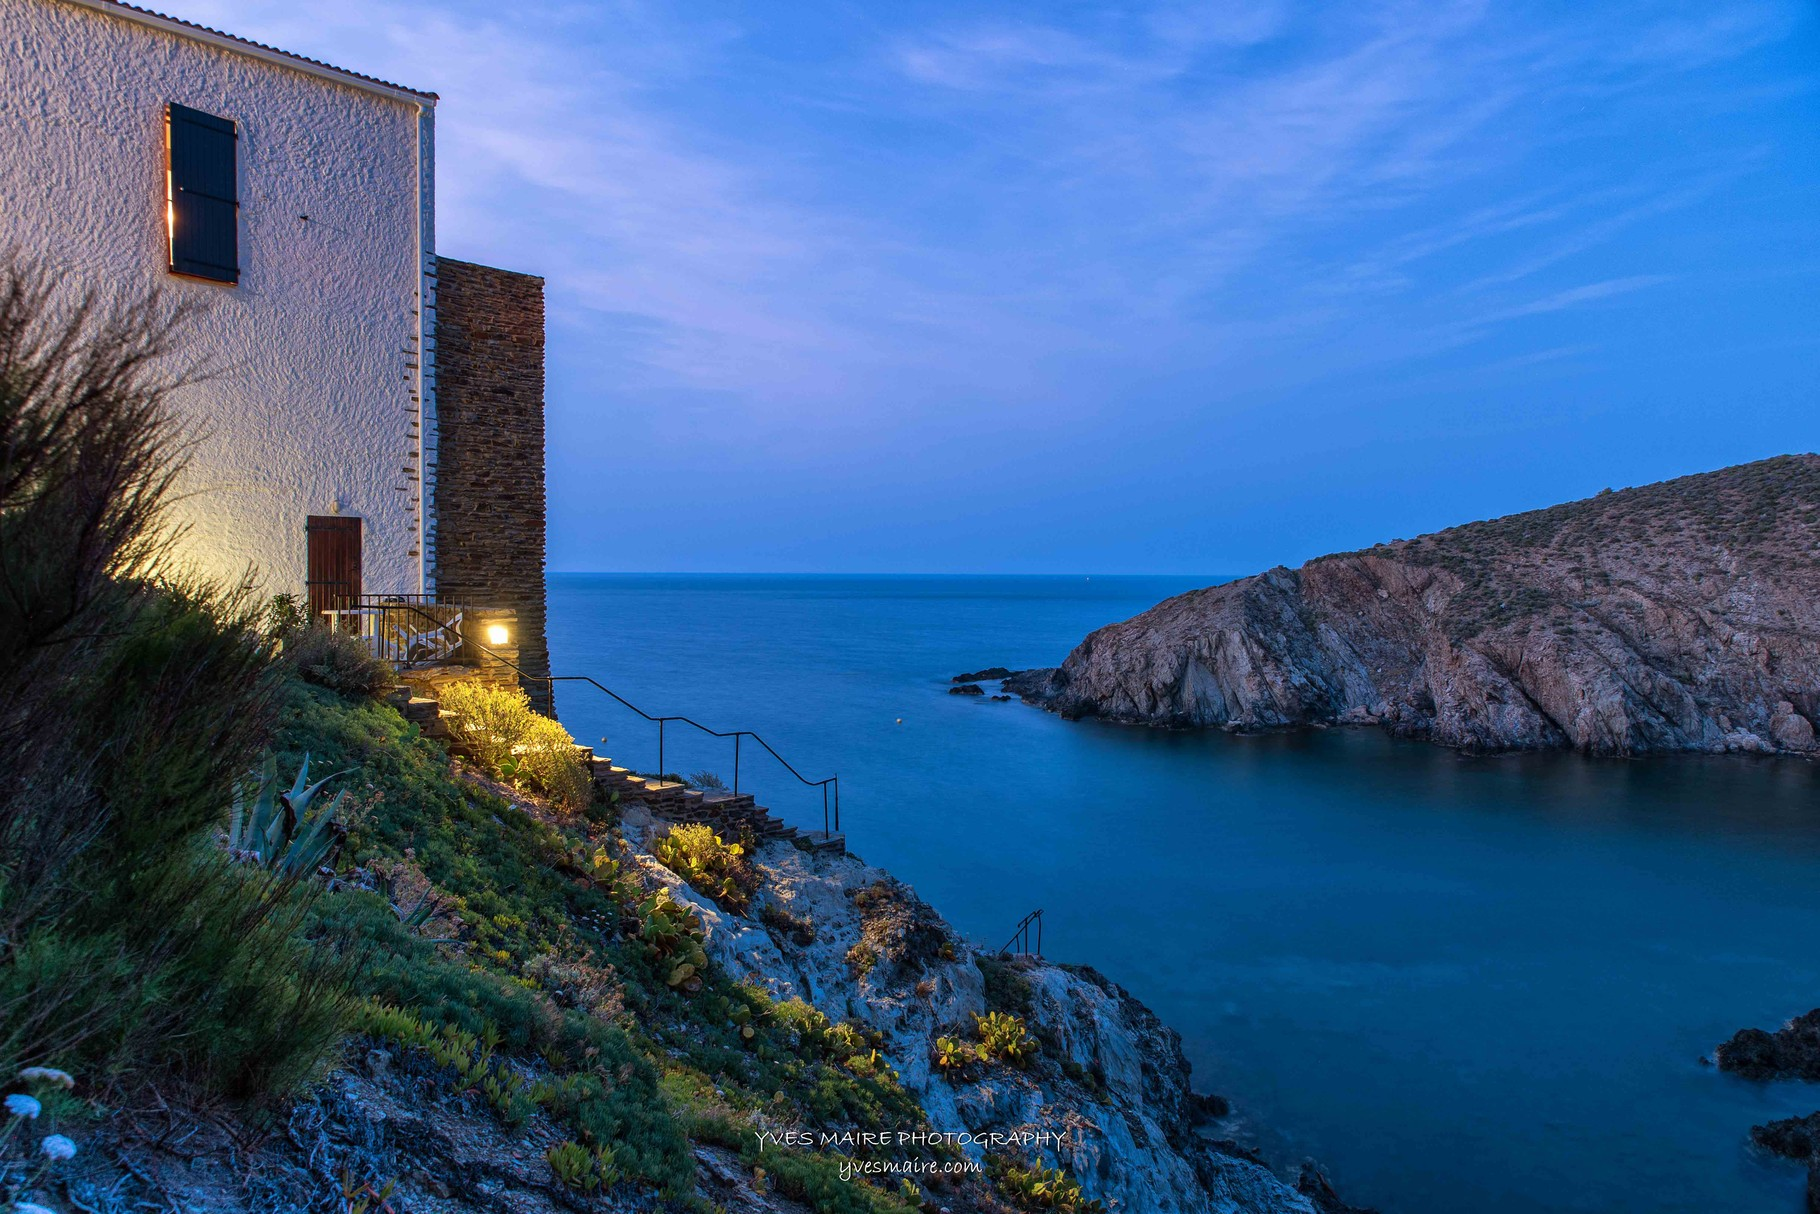 Le Troc Pinell, Banyuls sur mer 2